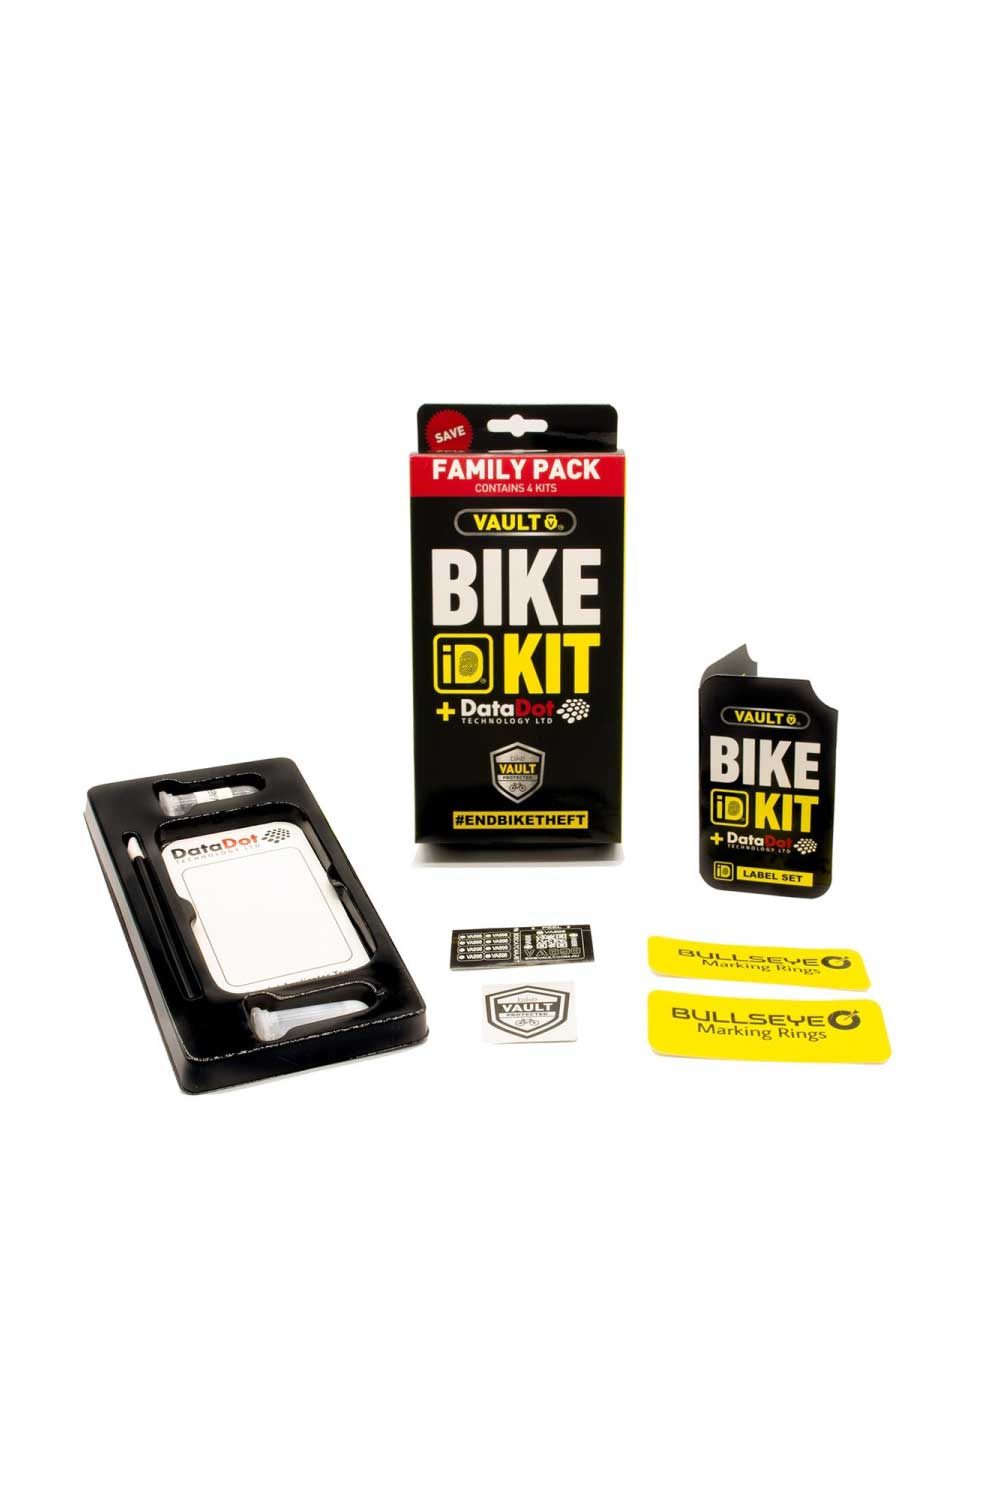 Vault Combination Cable Lock with Bike ID Kit